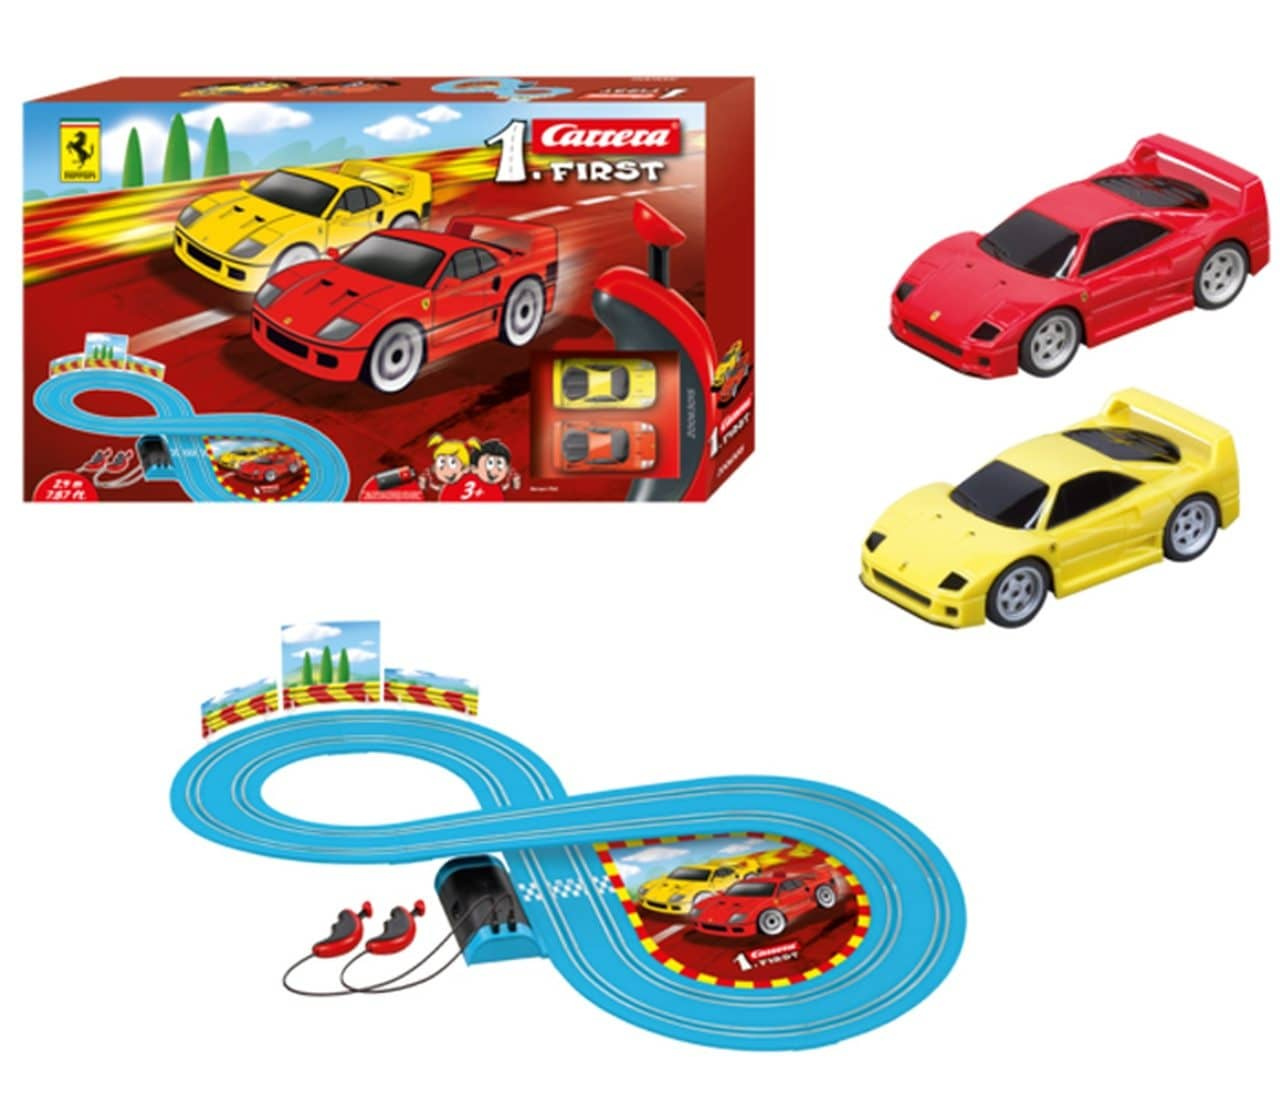 Carrera First Ferrari Slot Car Race Track - Includes 2 Cars: Red And Yellow Ferrari And Two-Controllers - Battery-Powered Beginner Set For Kids Ages 3 Years And Up-Kidding Around NYC